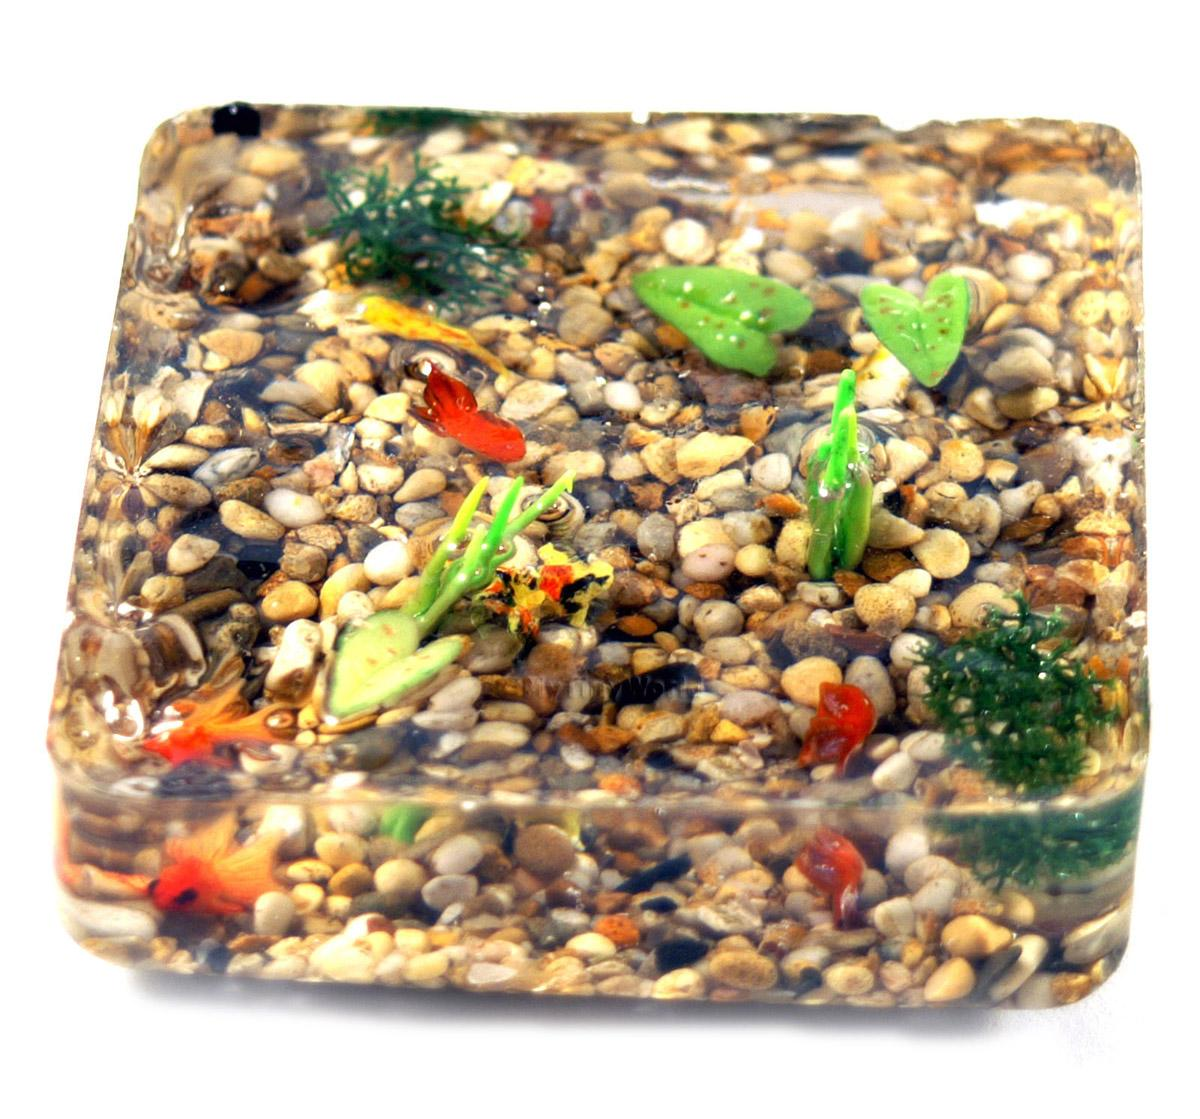 6 Dolls House Miniature Assorted Style Chinese Gold Fish In A Resin Pond